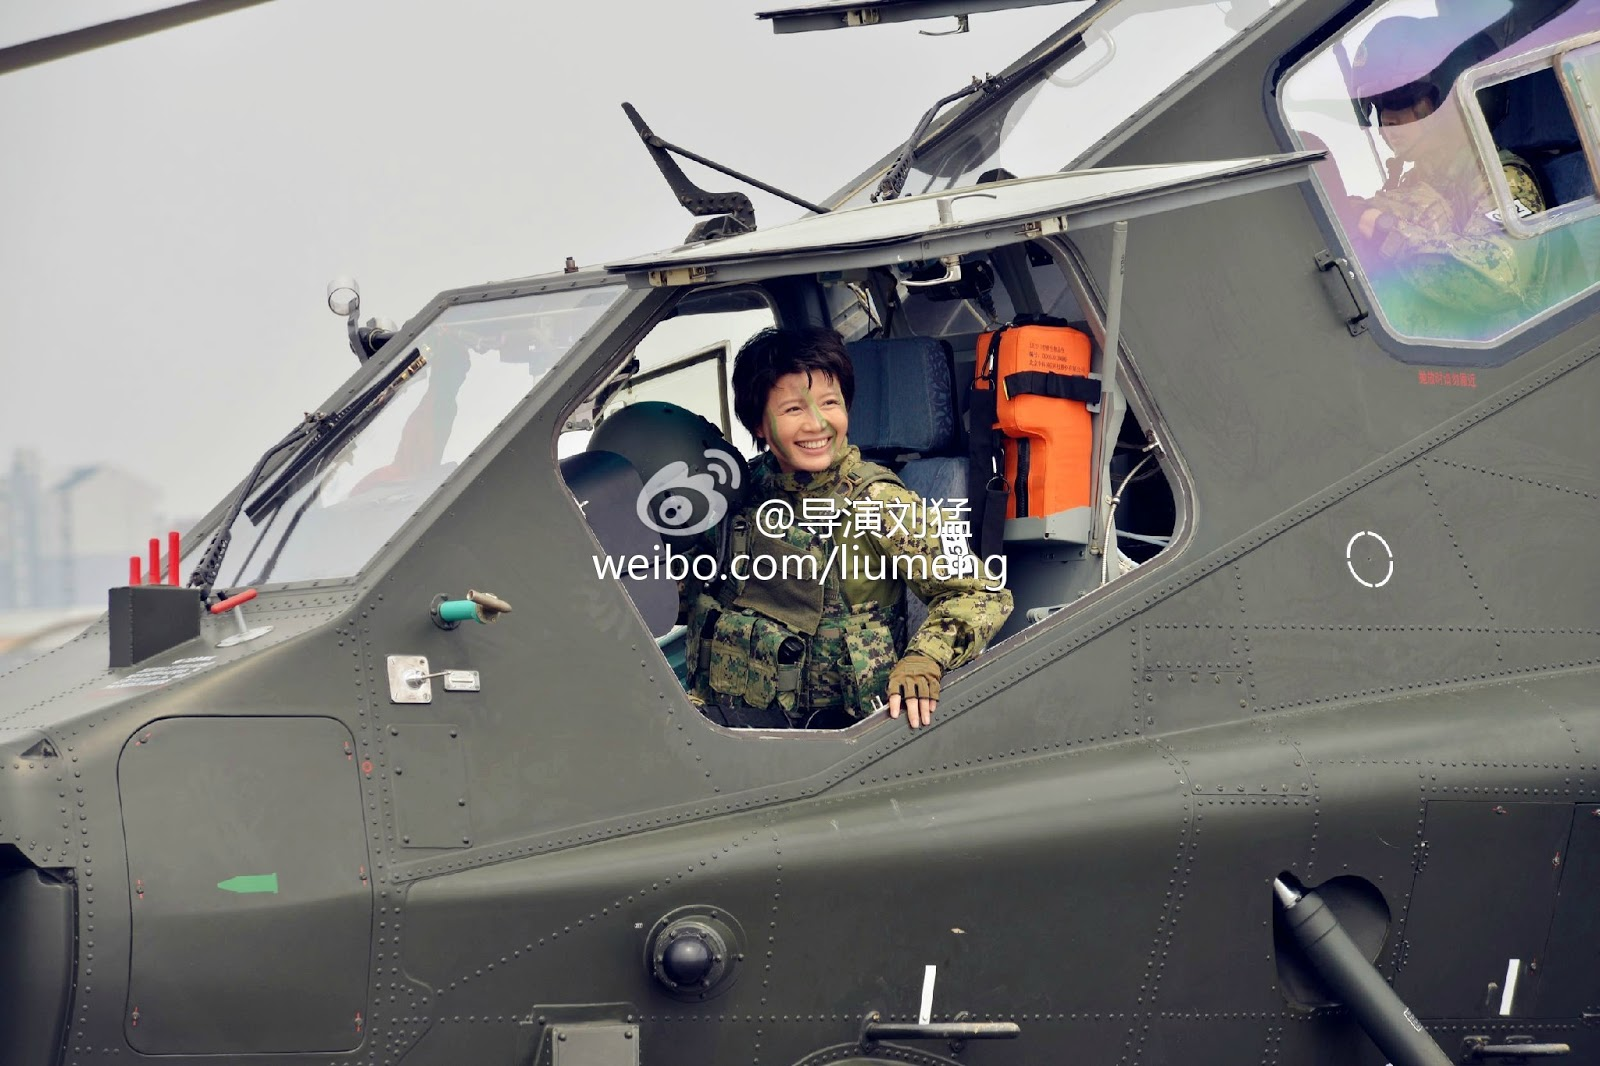 Fuerzas armadas de la República Popular China - Página 3 Female+women+pilots+armed+Chinese+Z-10+Attack+Helicopter+gunship+PLA+Peoples+Liberation+Army+Air+Force+export+pakitan+missile+hj10+atgm+rocket++%25283%2529